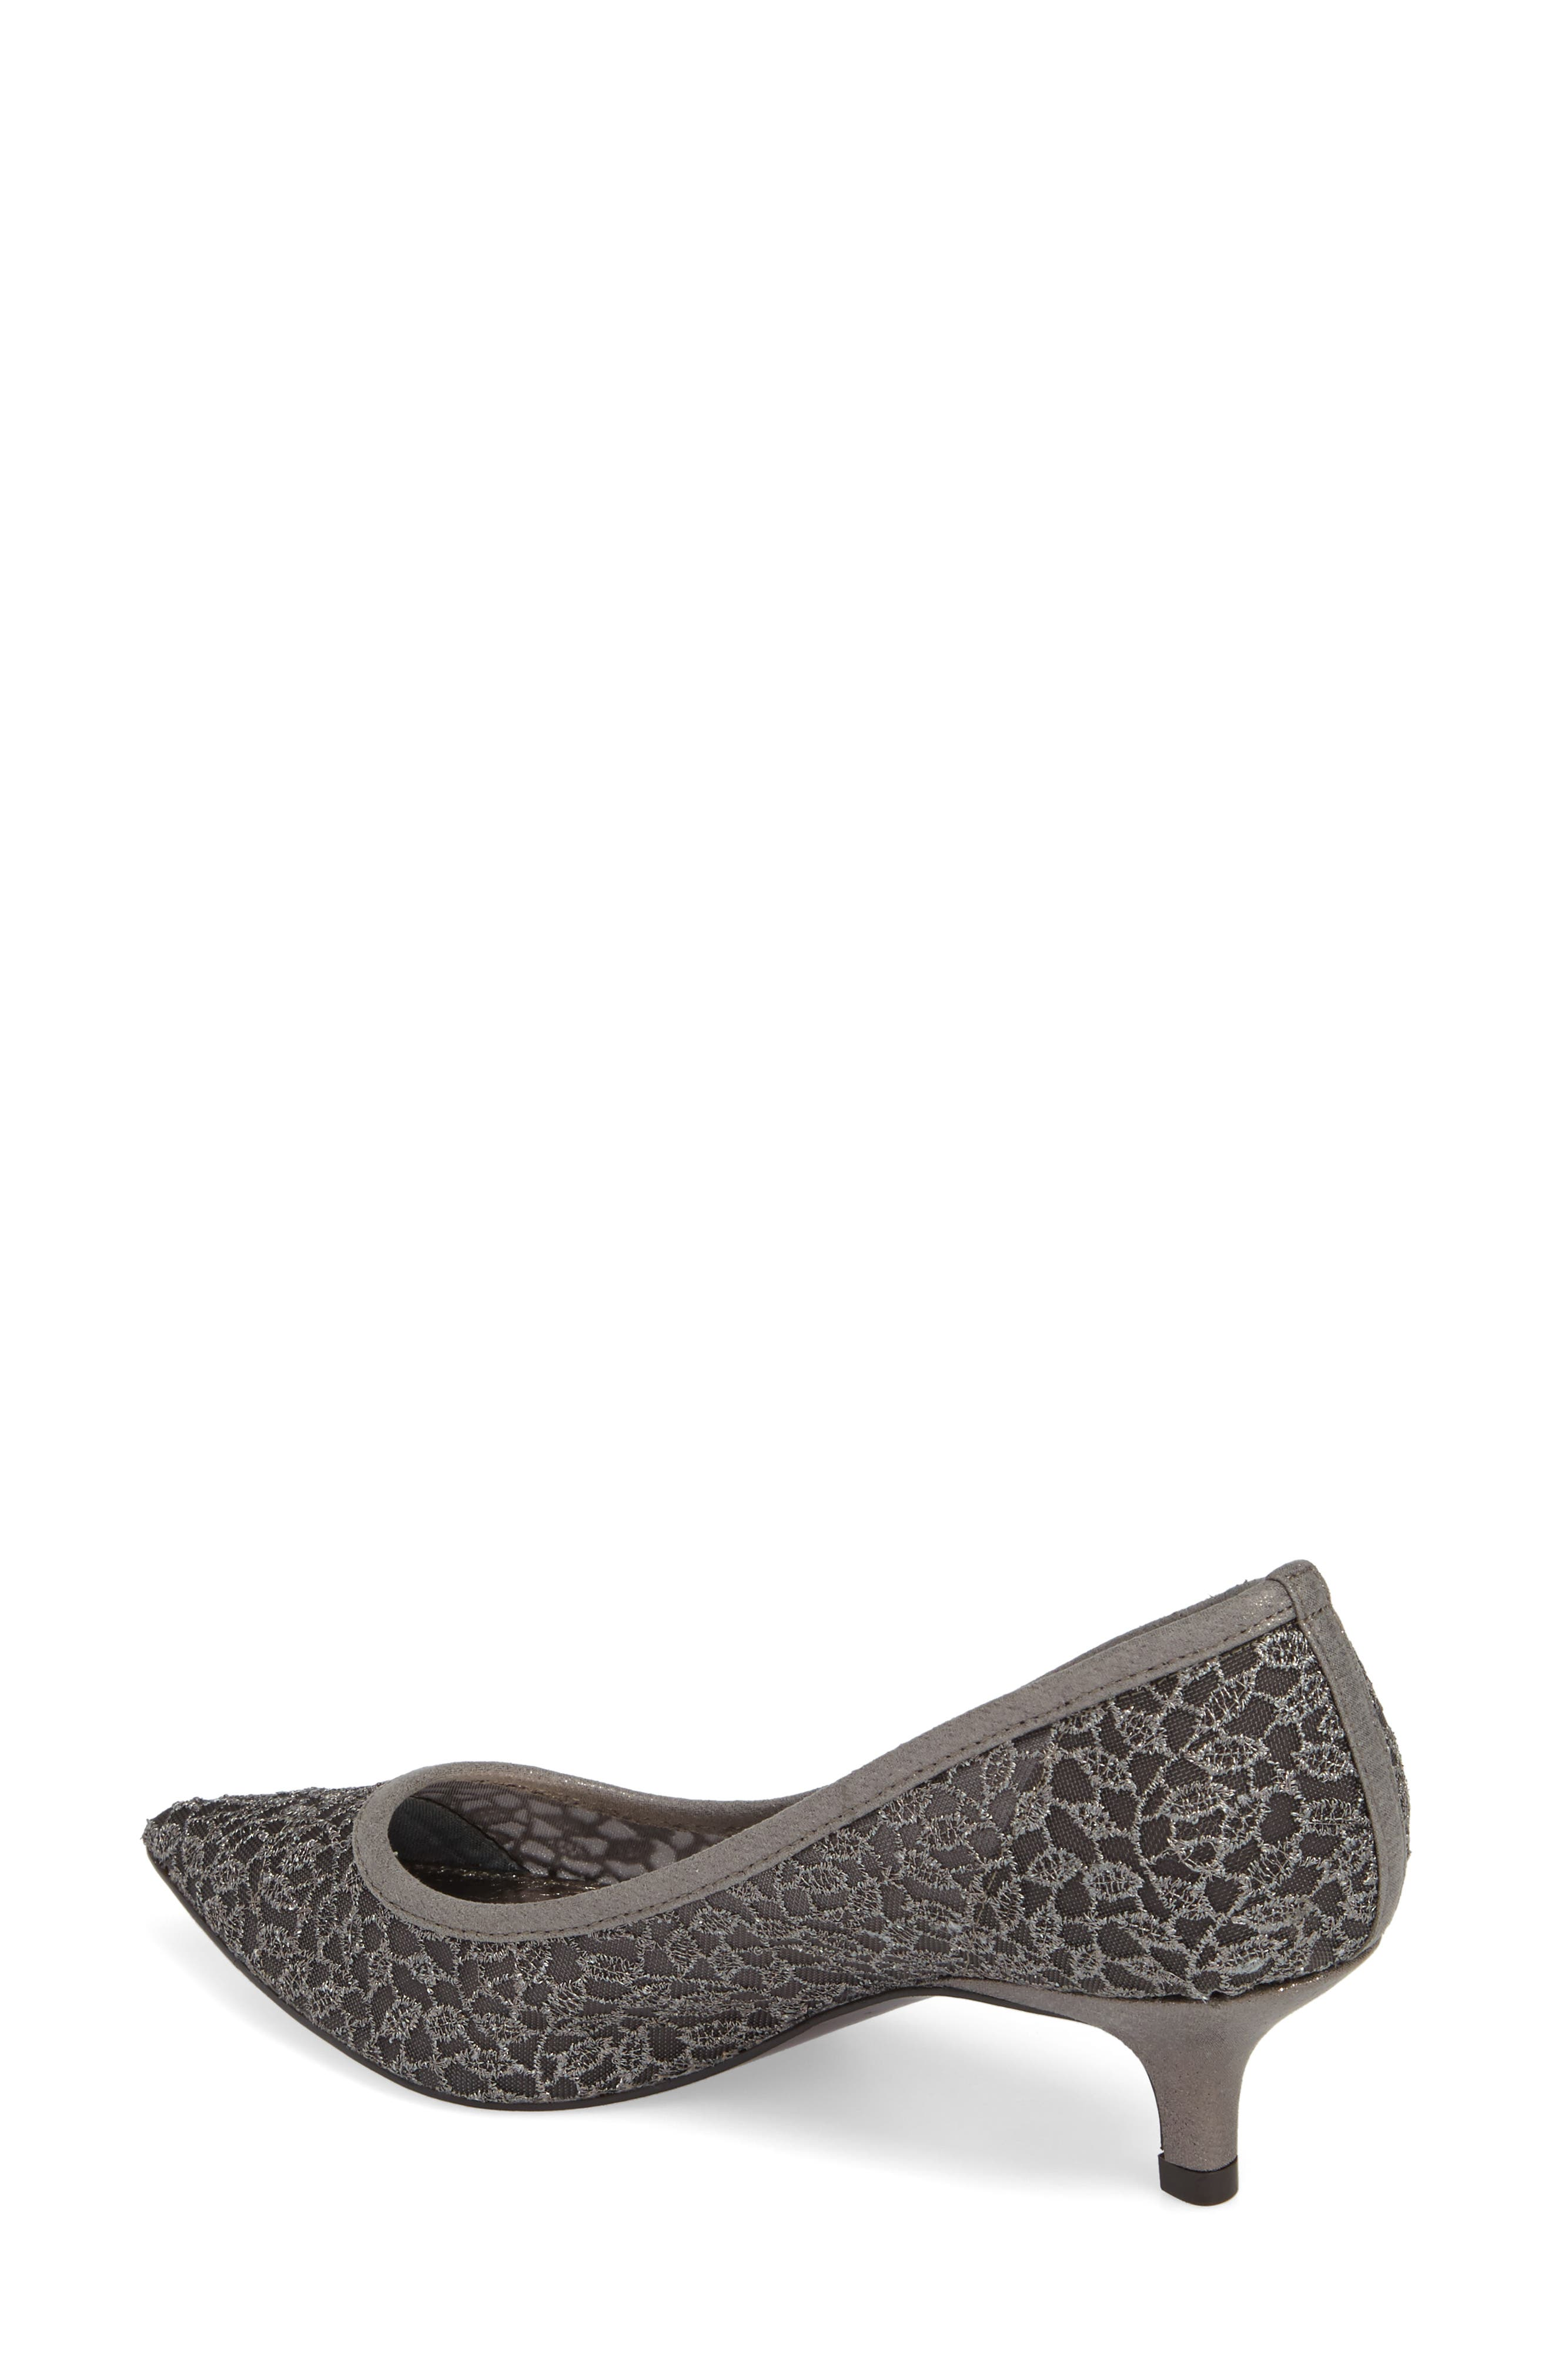 ADRIANNA PAPELL,                             'Lois' Mesh Pump,                             Alternate thumbnail 2, color,                             GUNMETAL LACE FABRIC